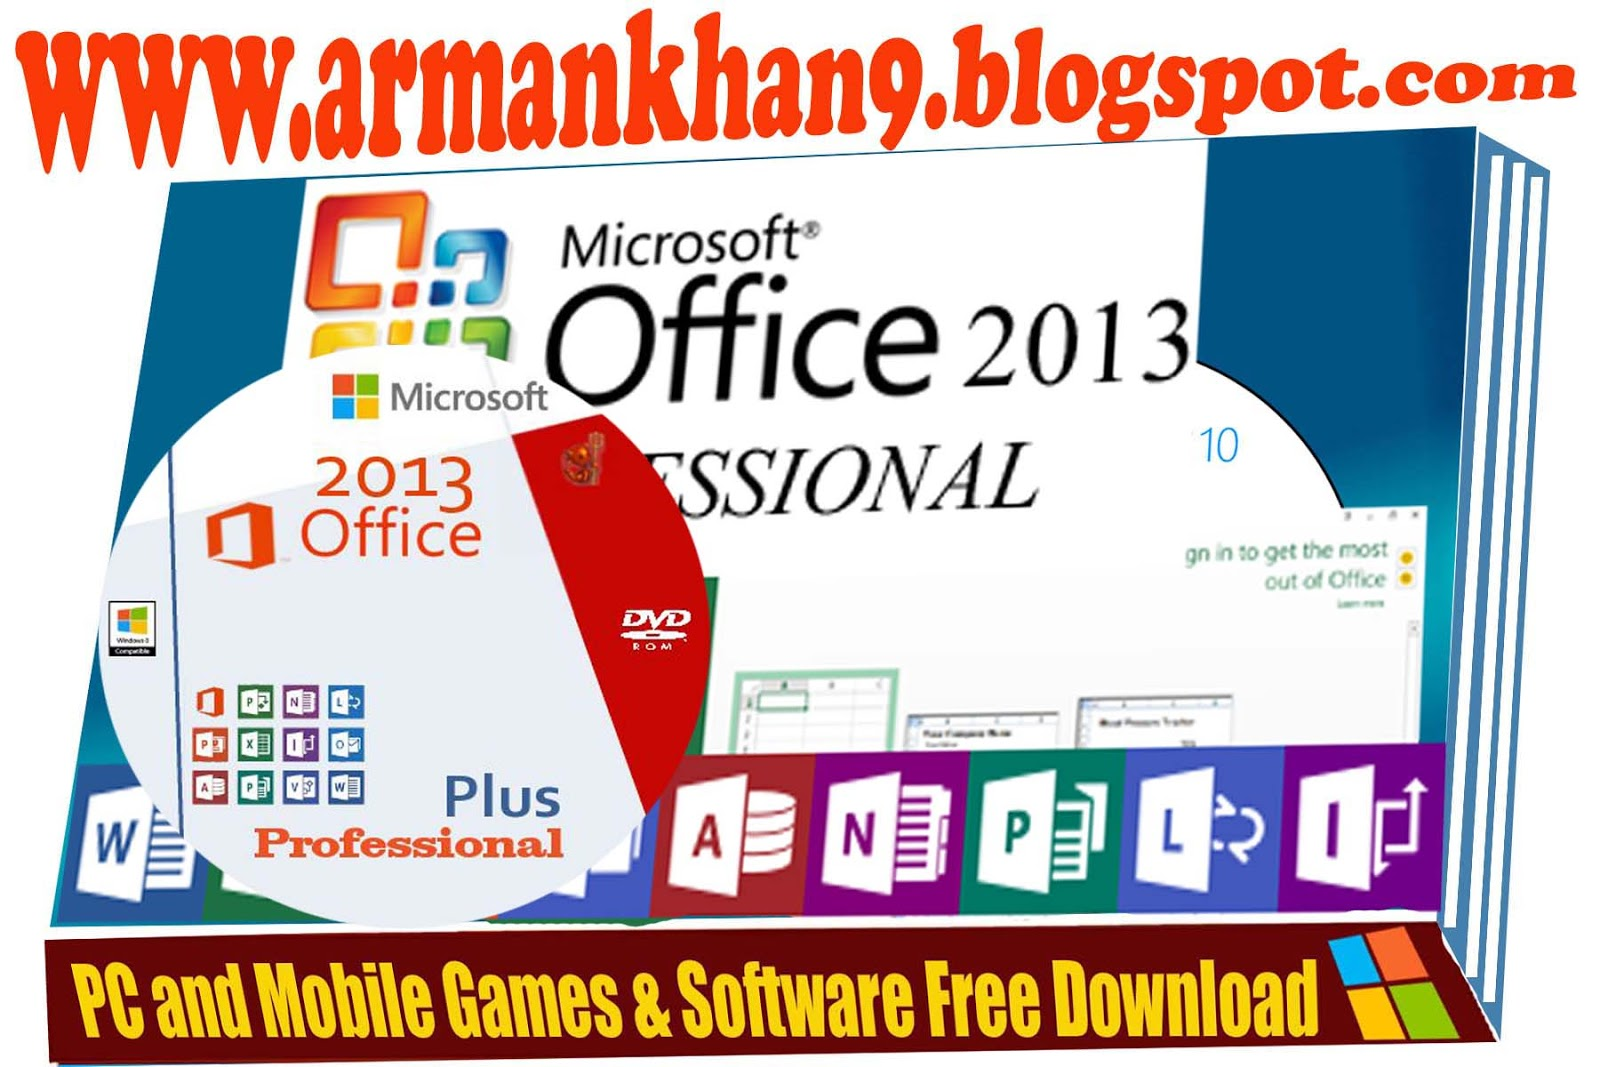 microsoft office 2013 student edition free download